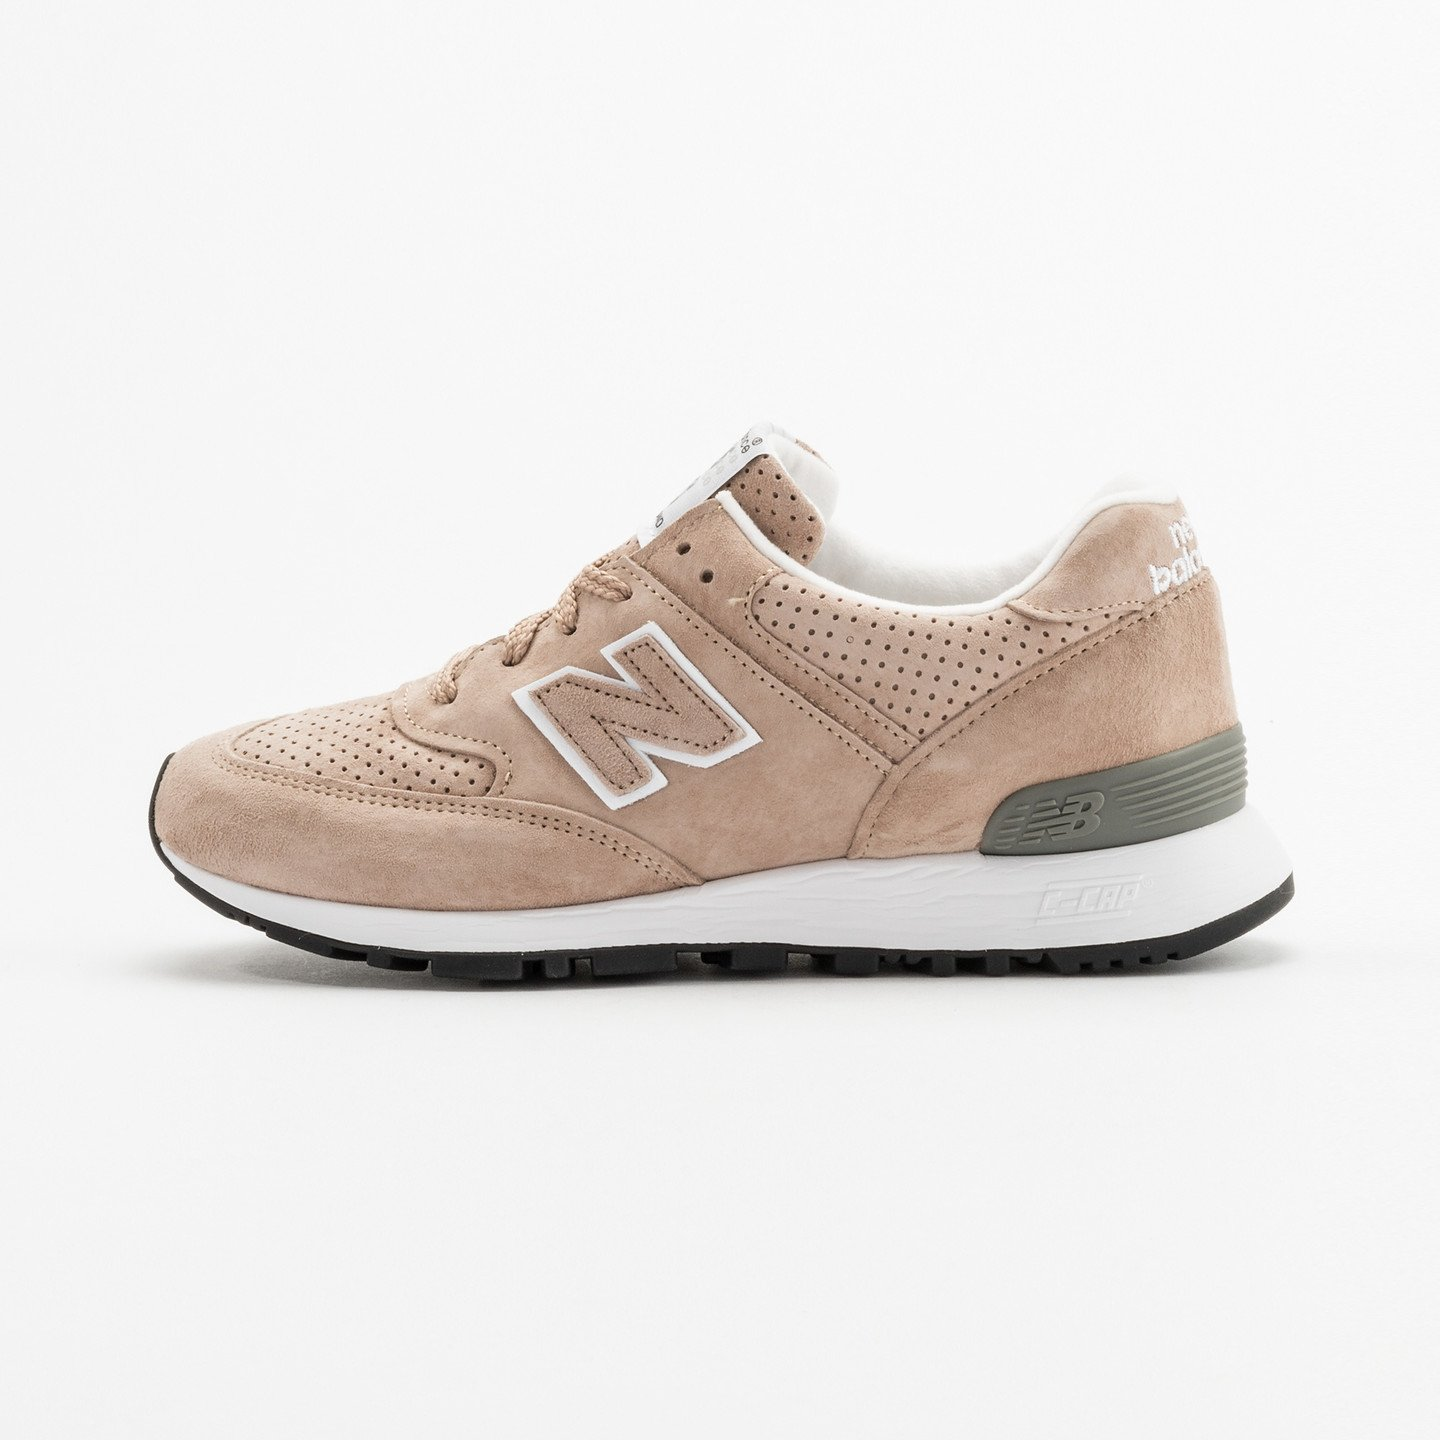 New Balance W576 TTO - Made in UK Light Brown / White W576TTO-39